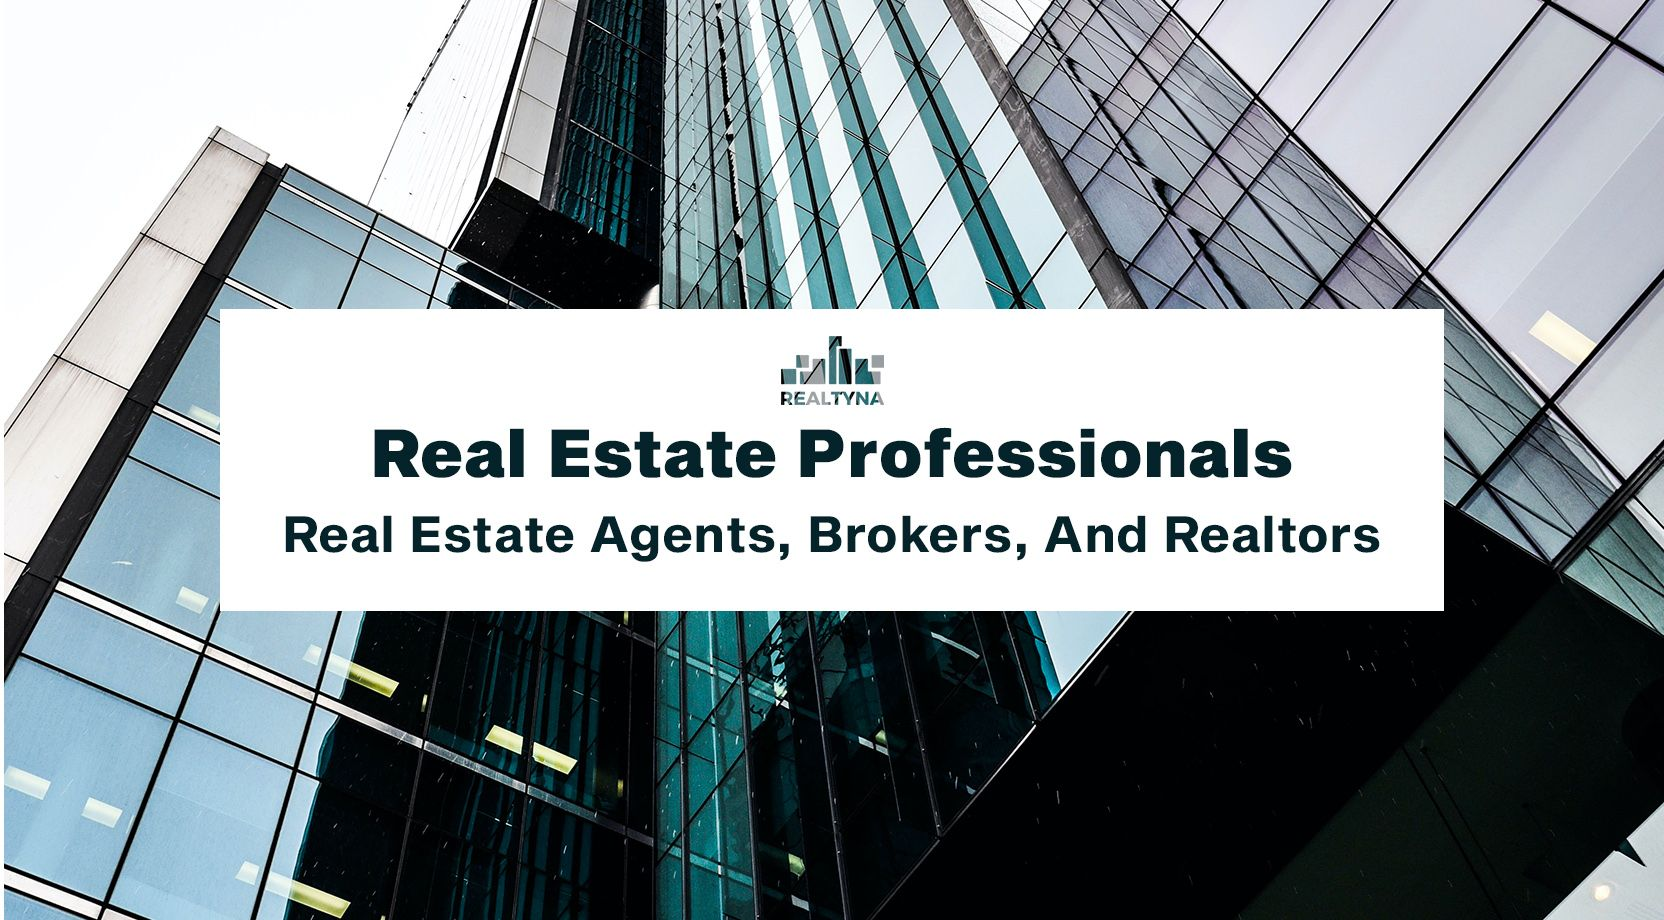 Real Estate Professionals: Real Estate Agents, Brokers, And Realtors